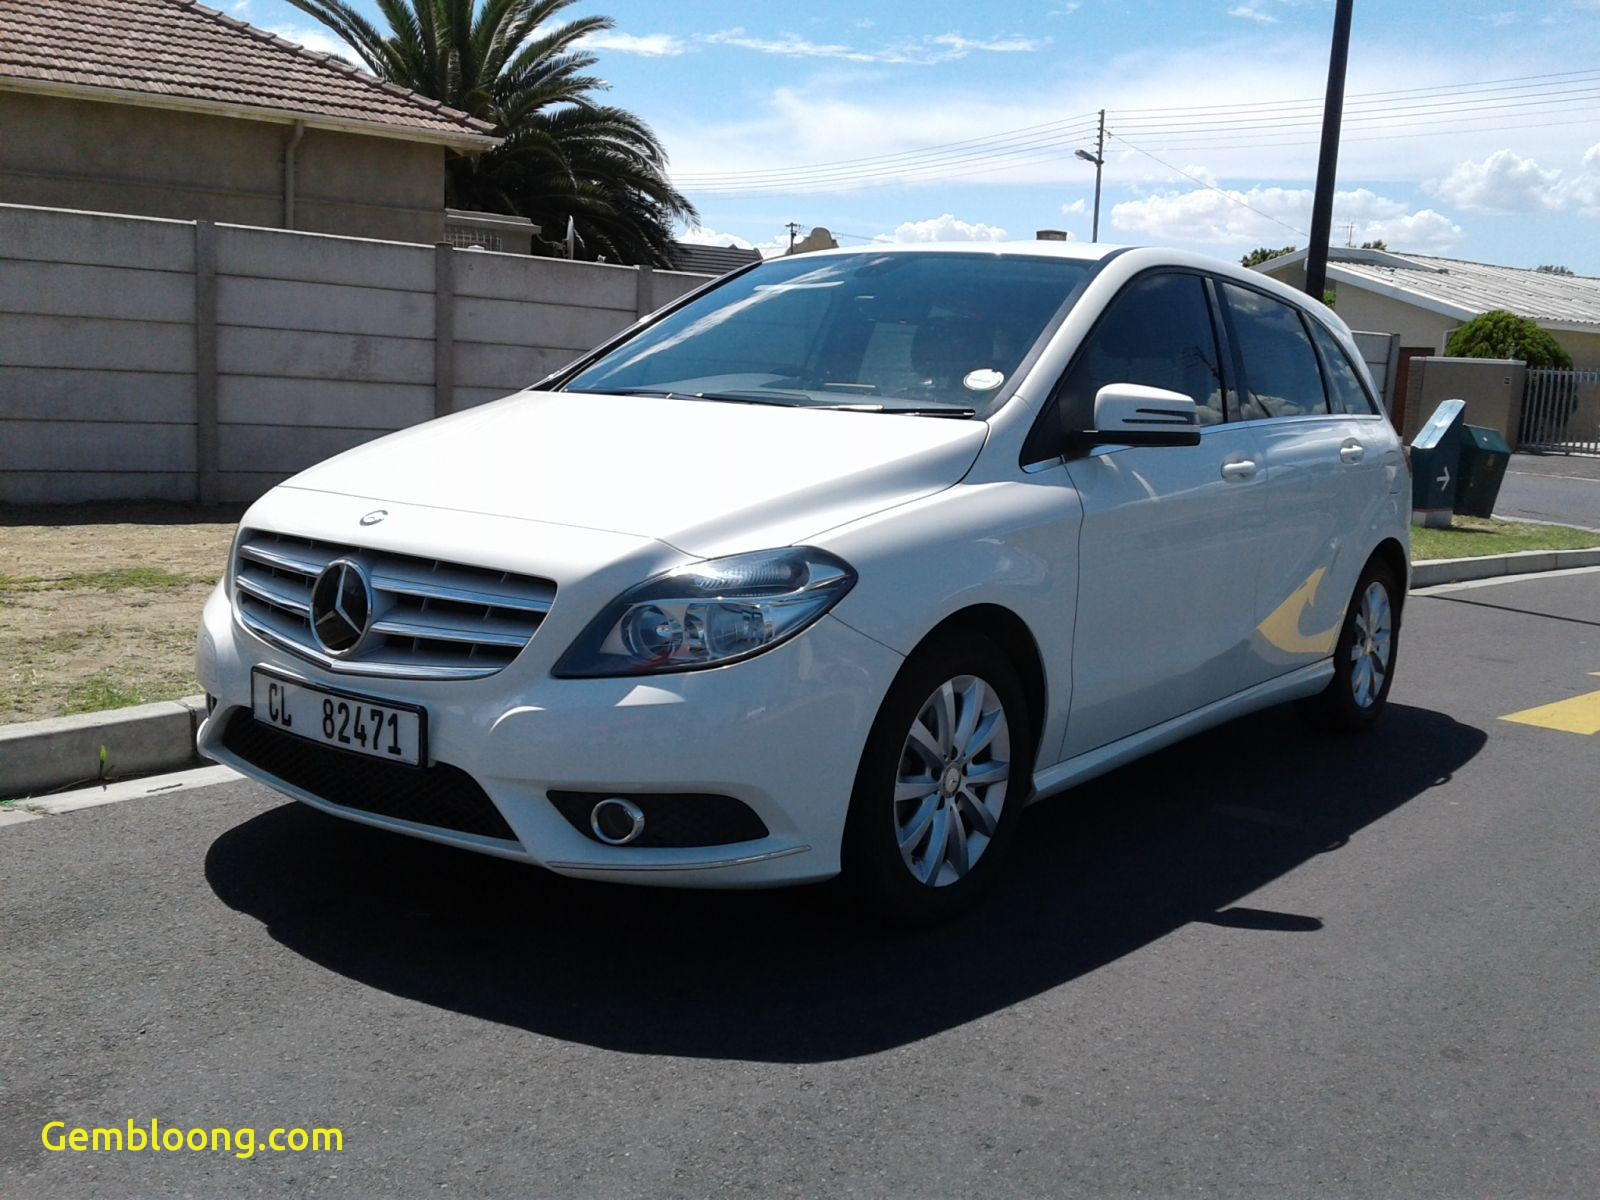 Used Cars for Sale Near Me Under 5000 by Owner Lovely Cars for Sale Near Me 5000 Elegant Used Cars Near Me Under 5000